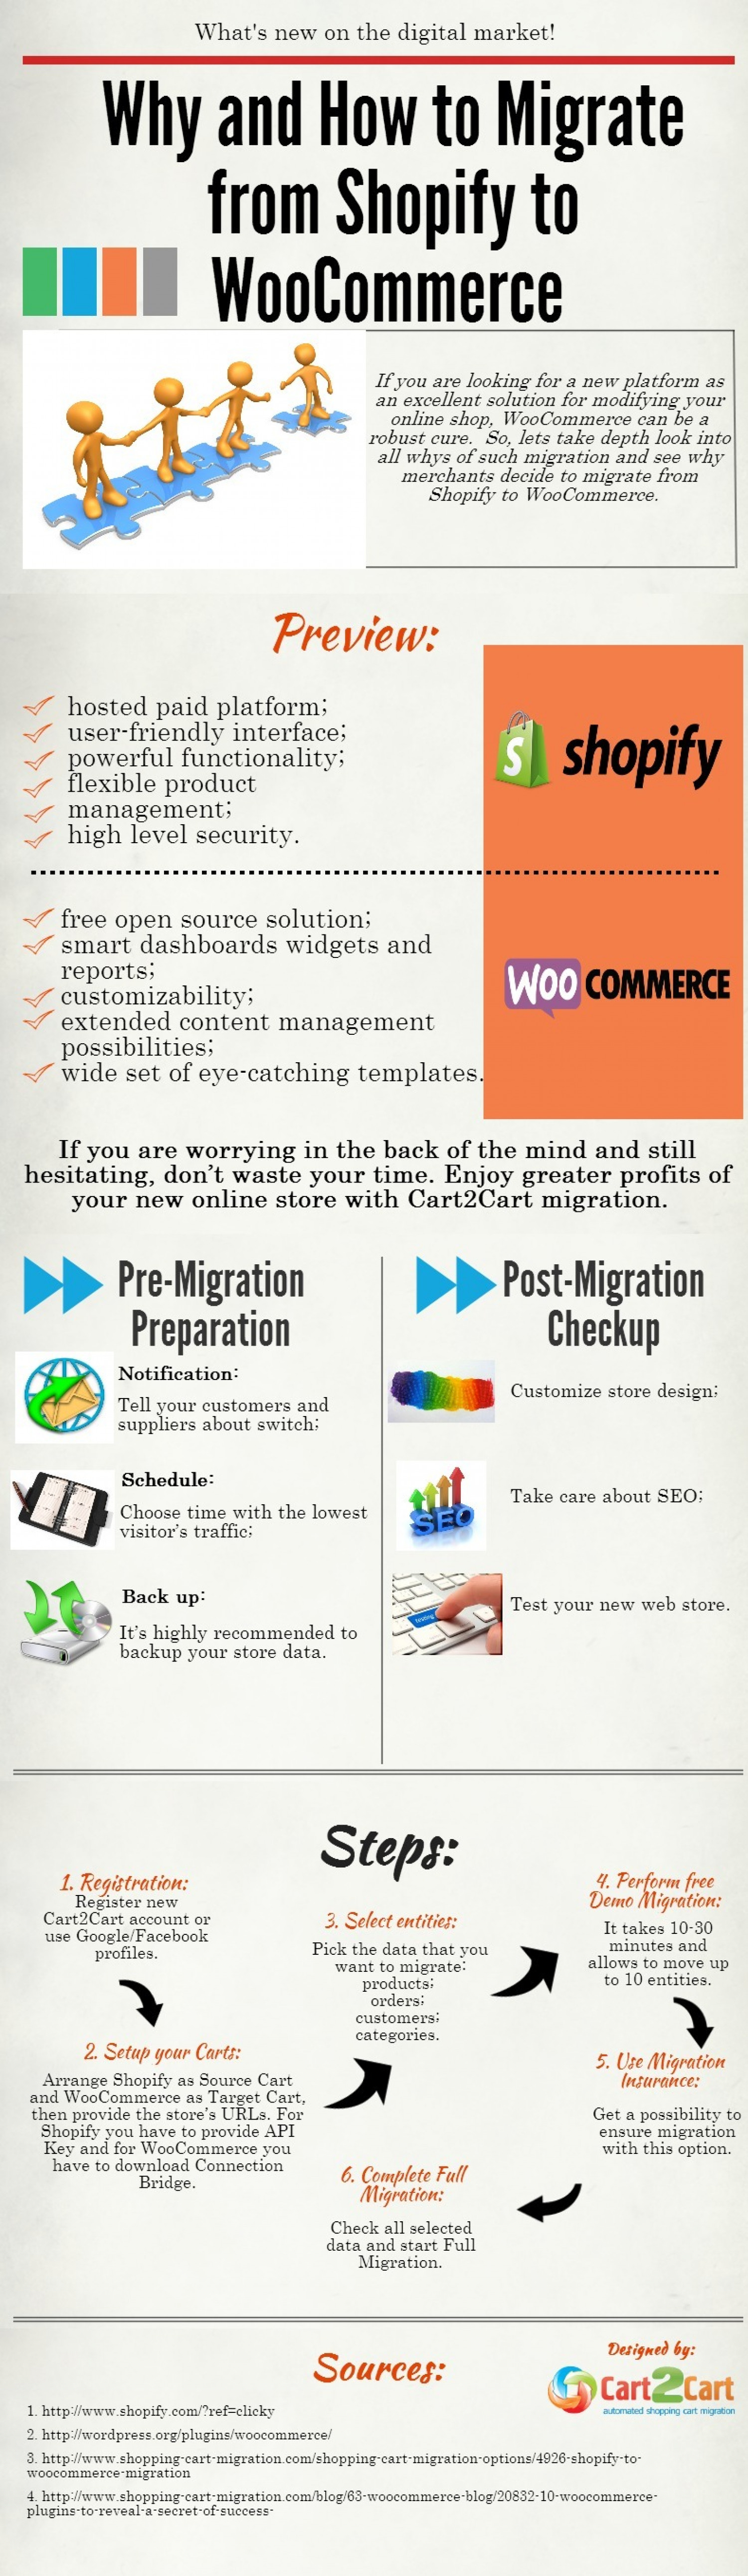 Why and How to Migrate form Shopify to WooCommerce Infographic